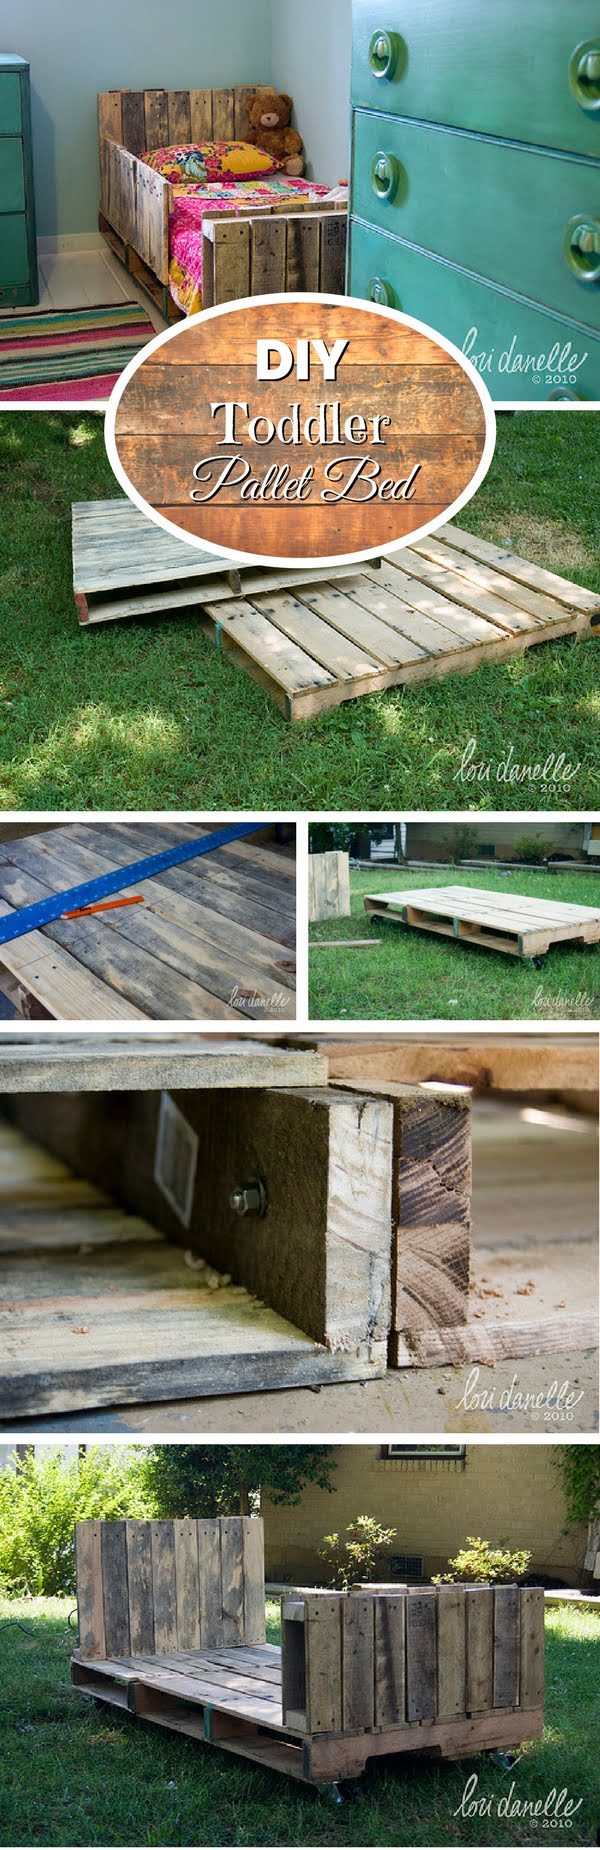 Check out how to build a DIY toddler pallet bed